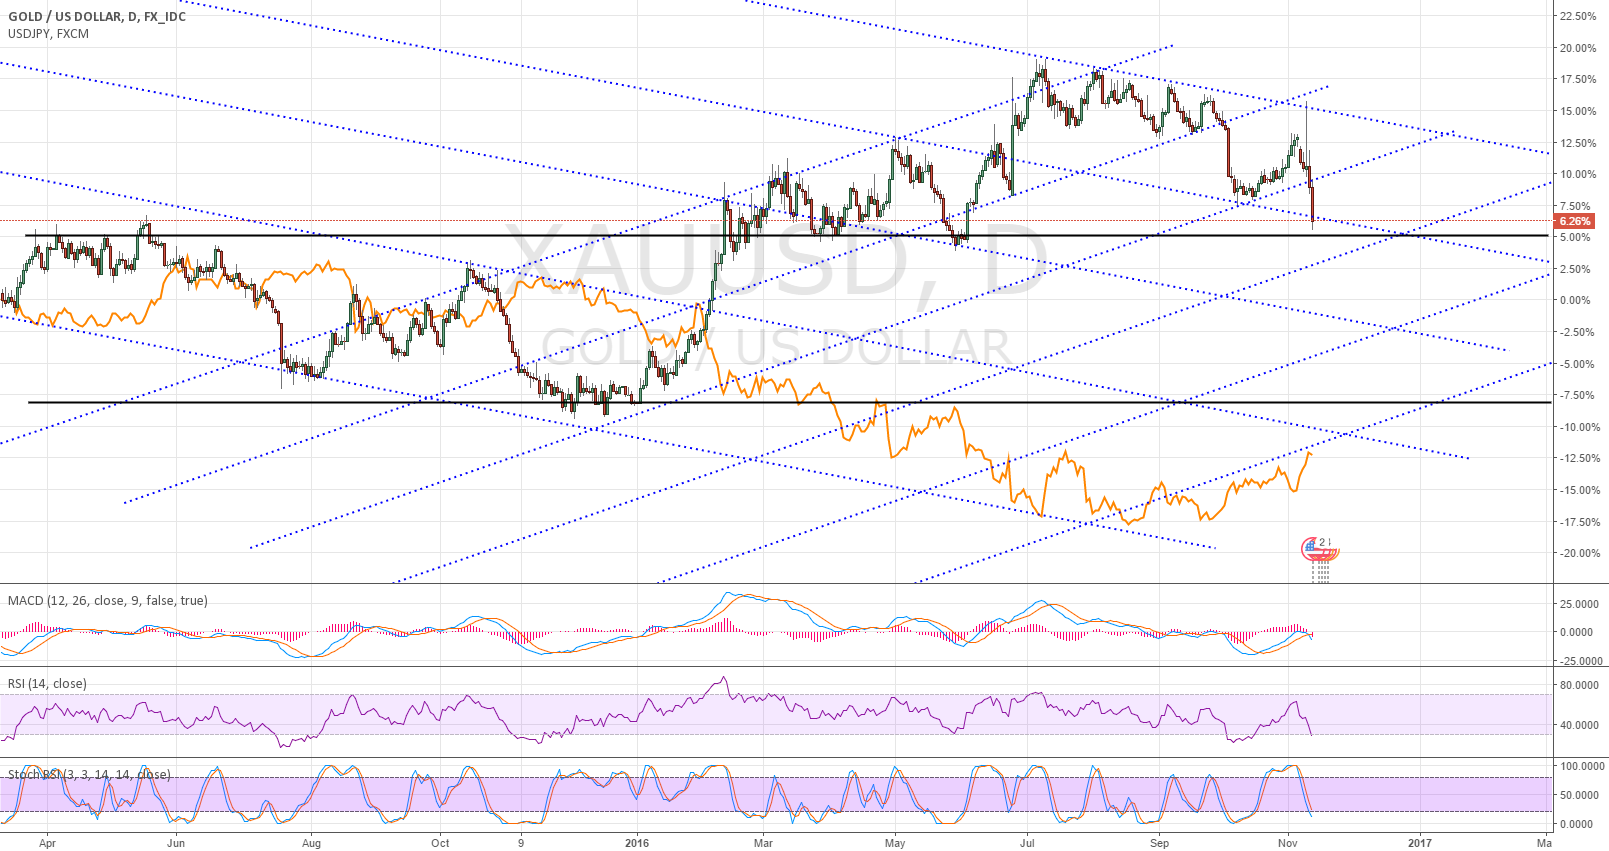 XAUUSD and USDJPY inverse relationship